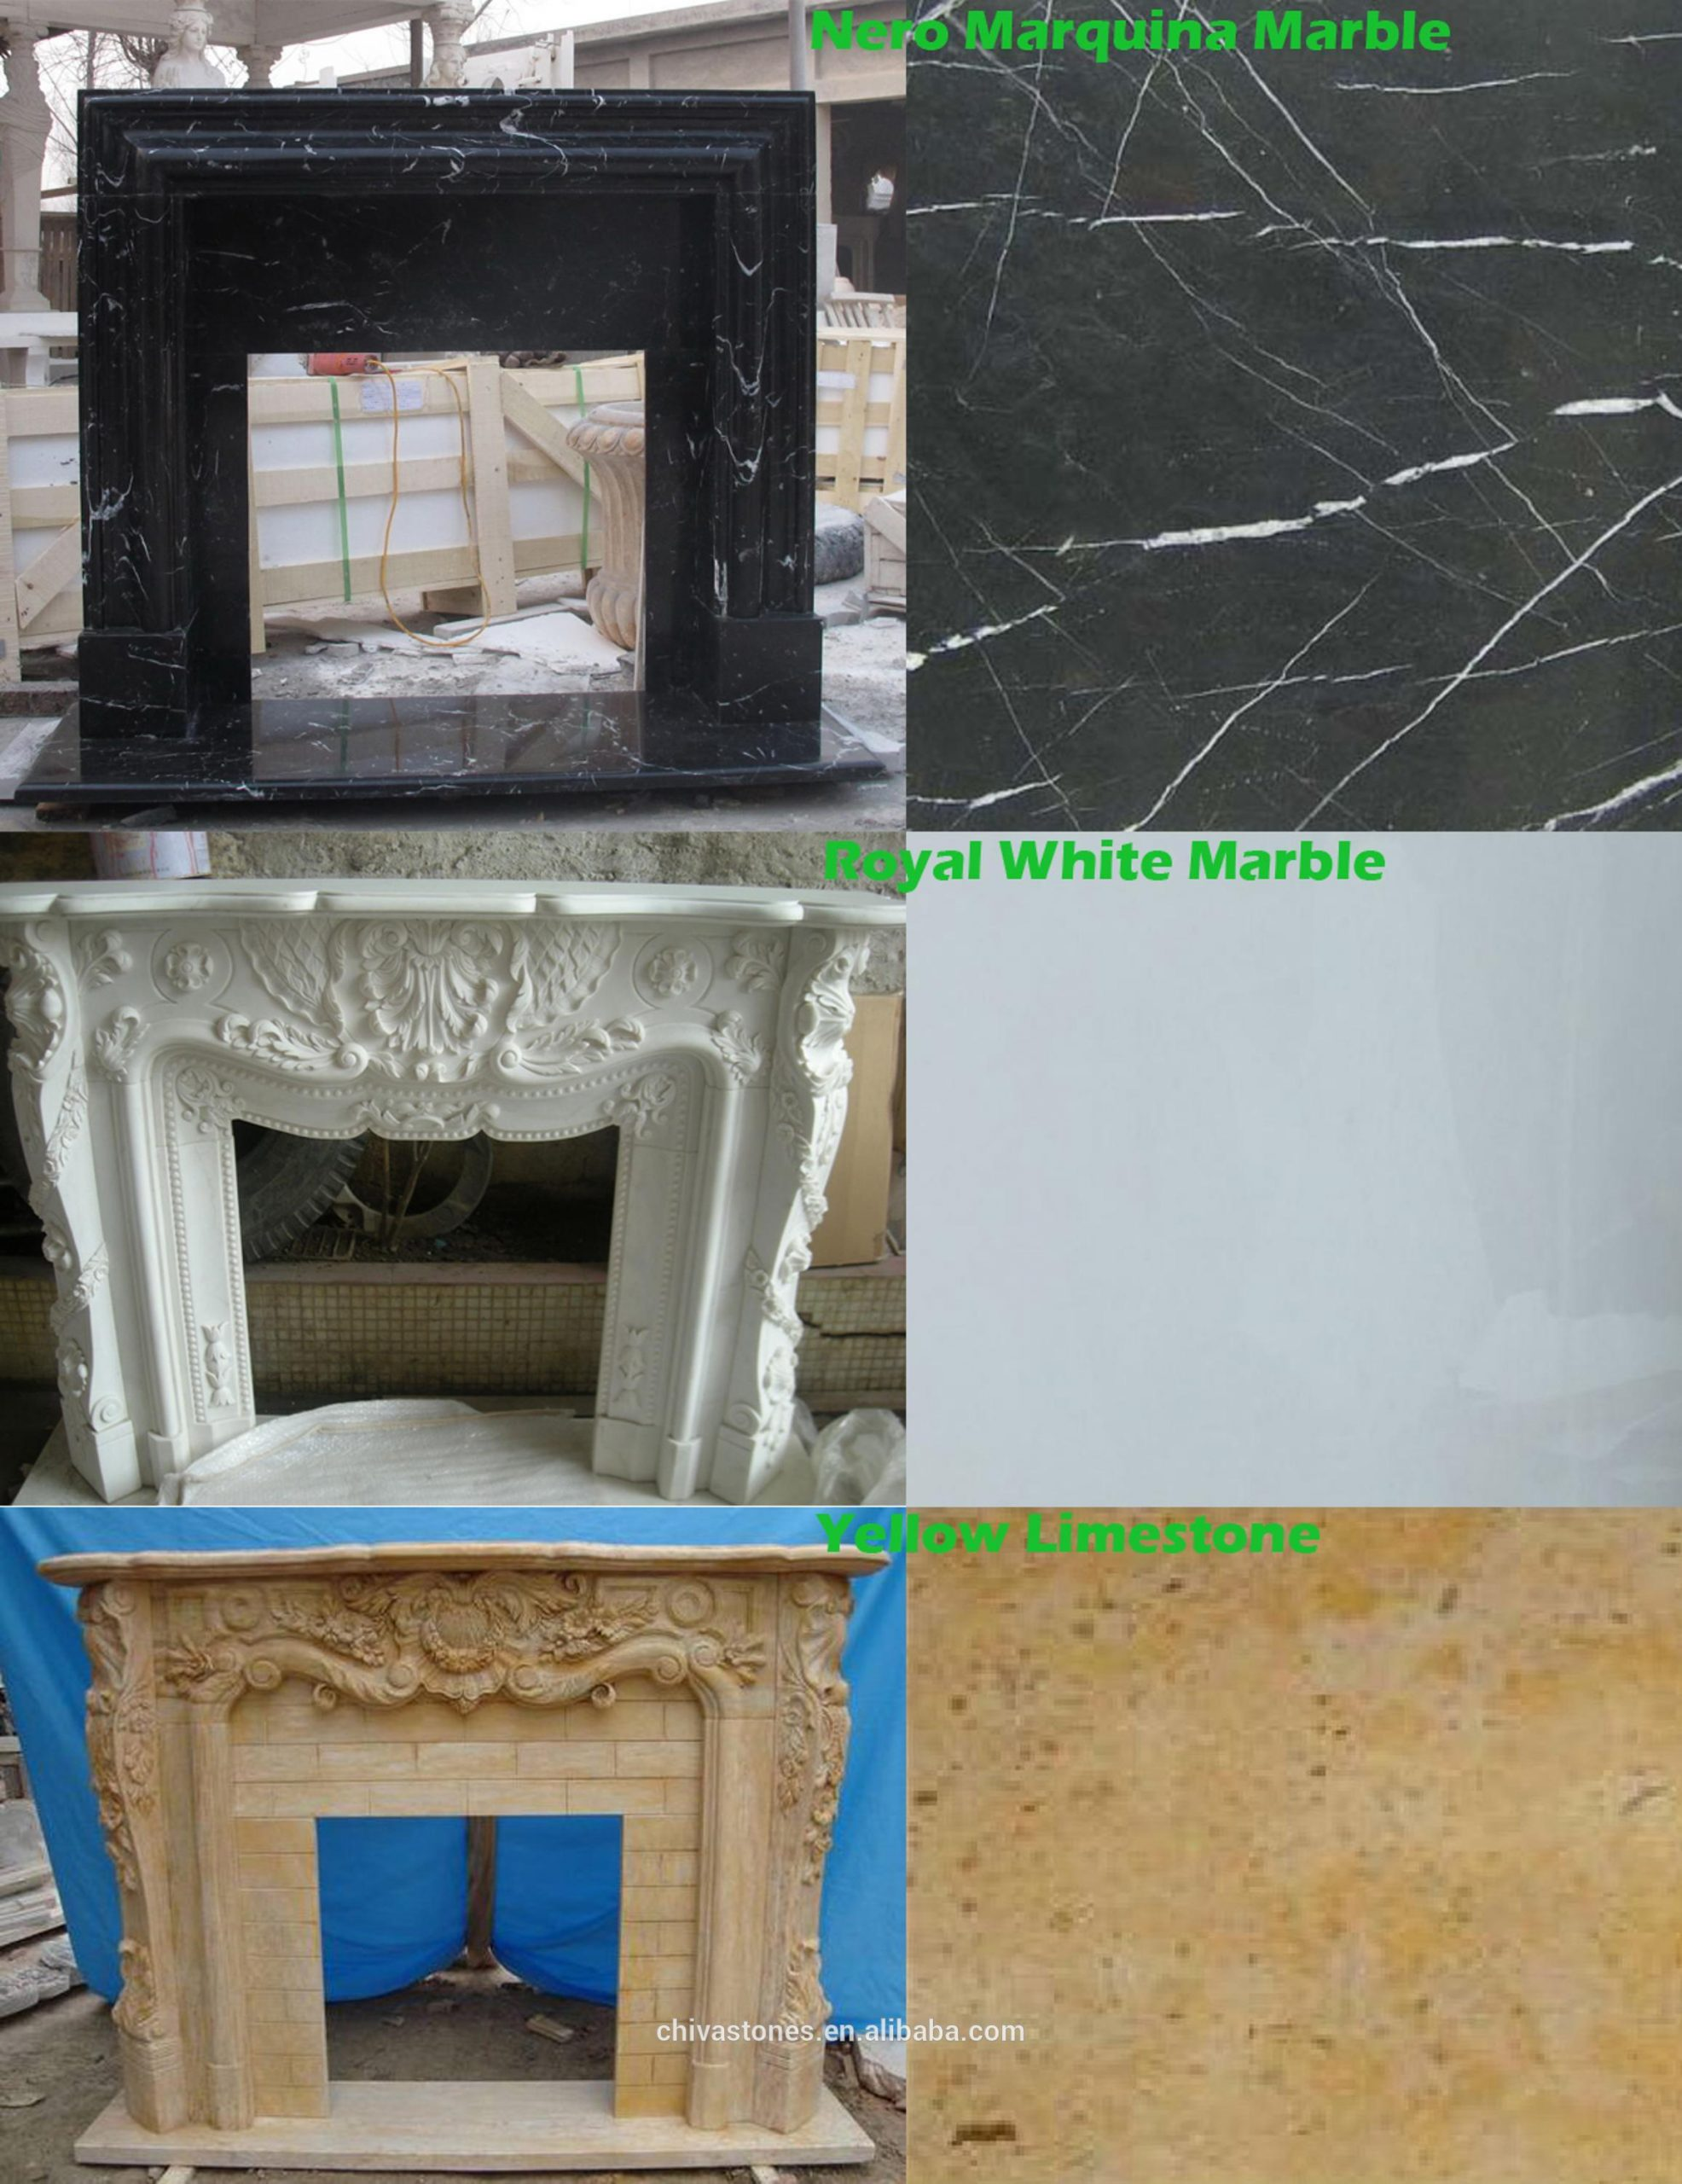 Wall Mounted Natural Gas Fireplace Best Of Natural Stone Marble Wall Mounted Gas Fireplace Marble